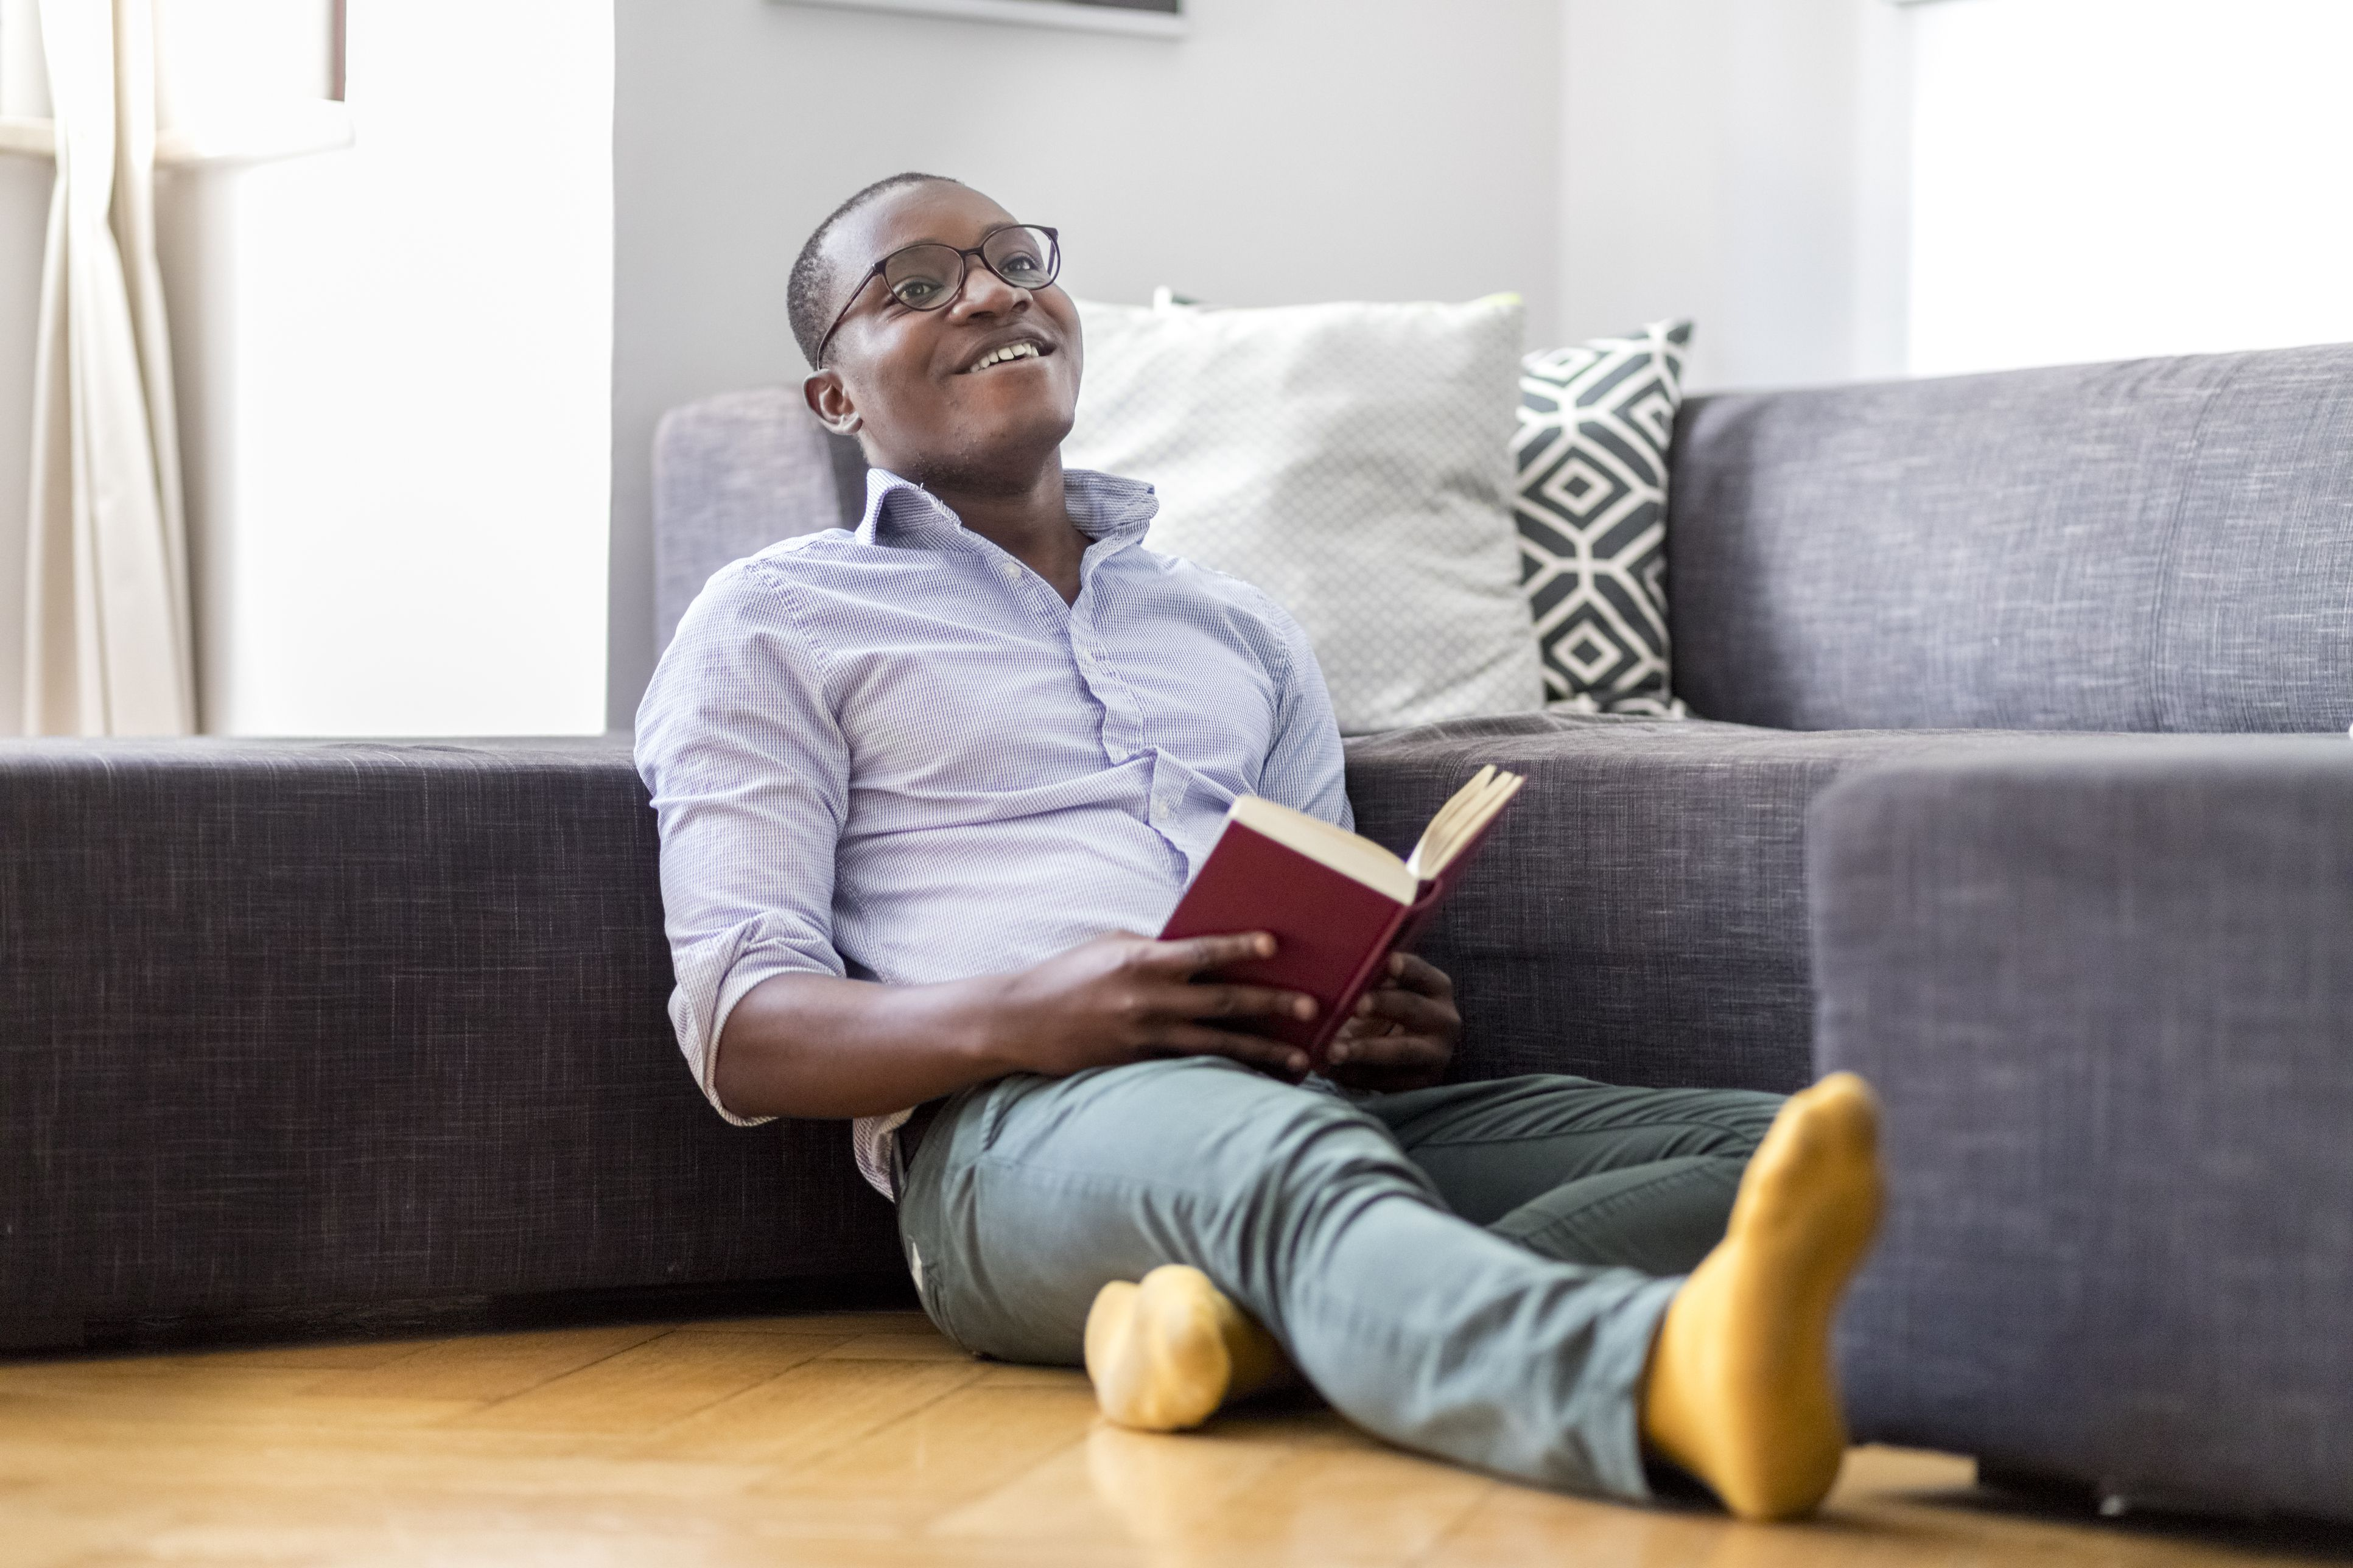 Books and Other Items for People with ADHD